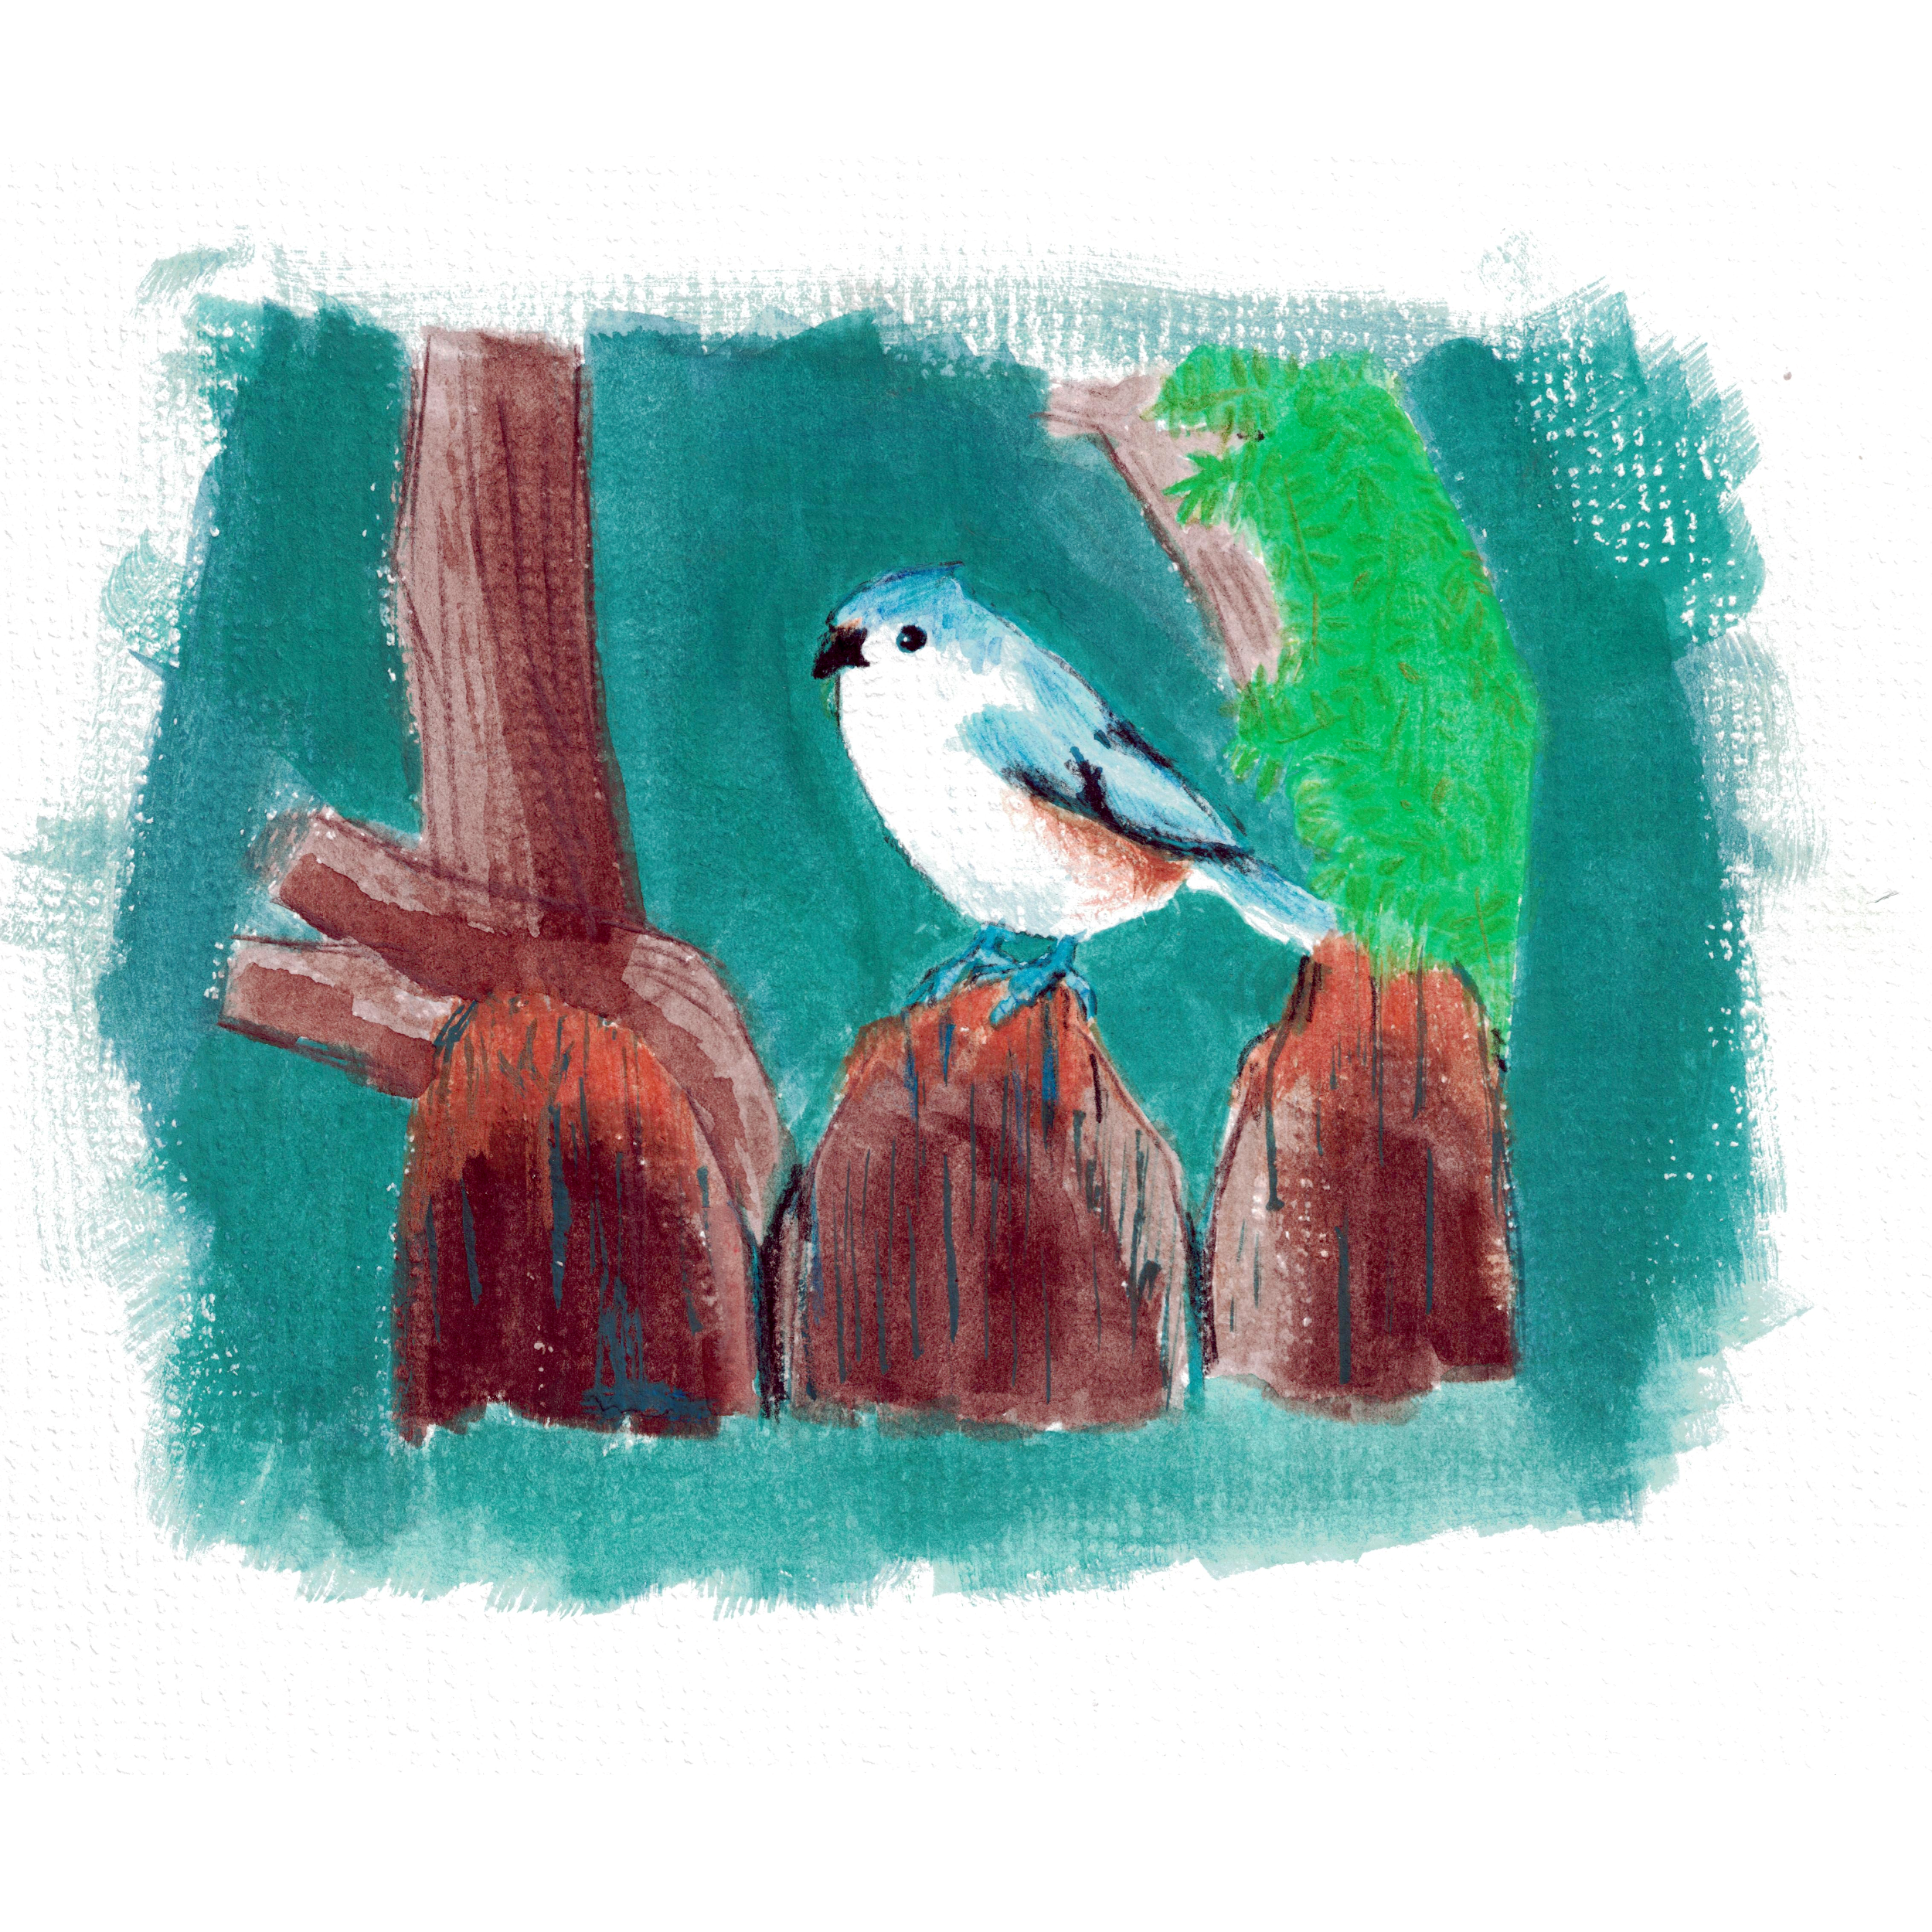 Drawing of a Tufted Titmouse on a fence